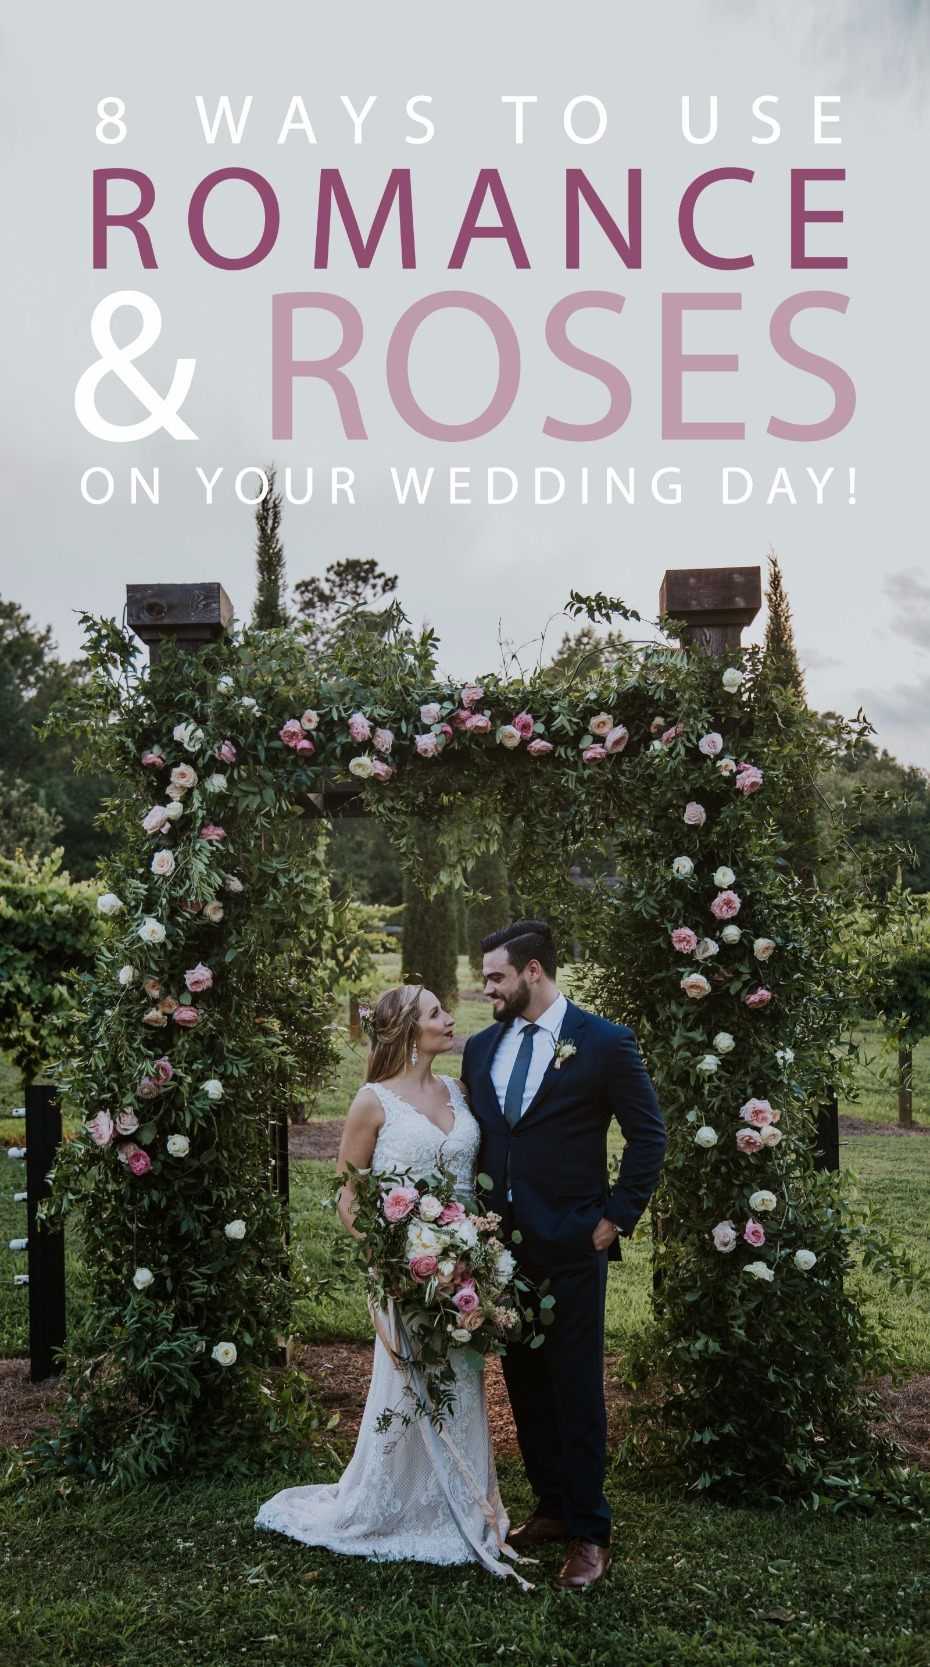 8 ways to use romance roses on your wedding